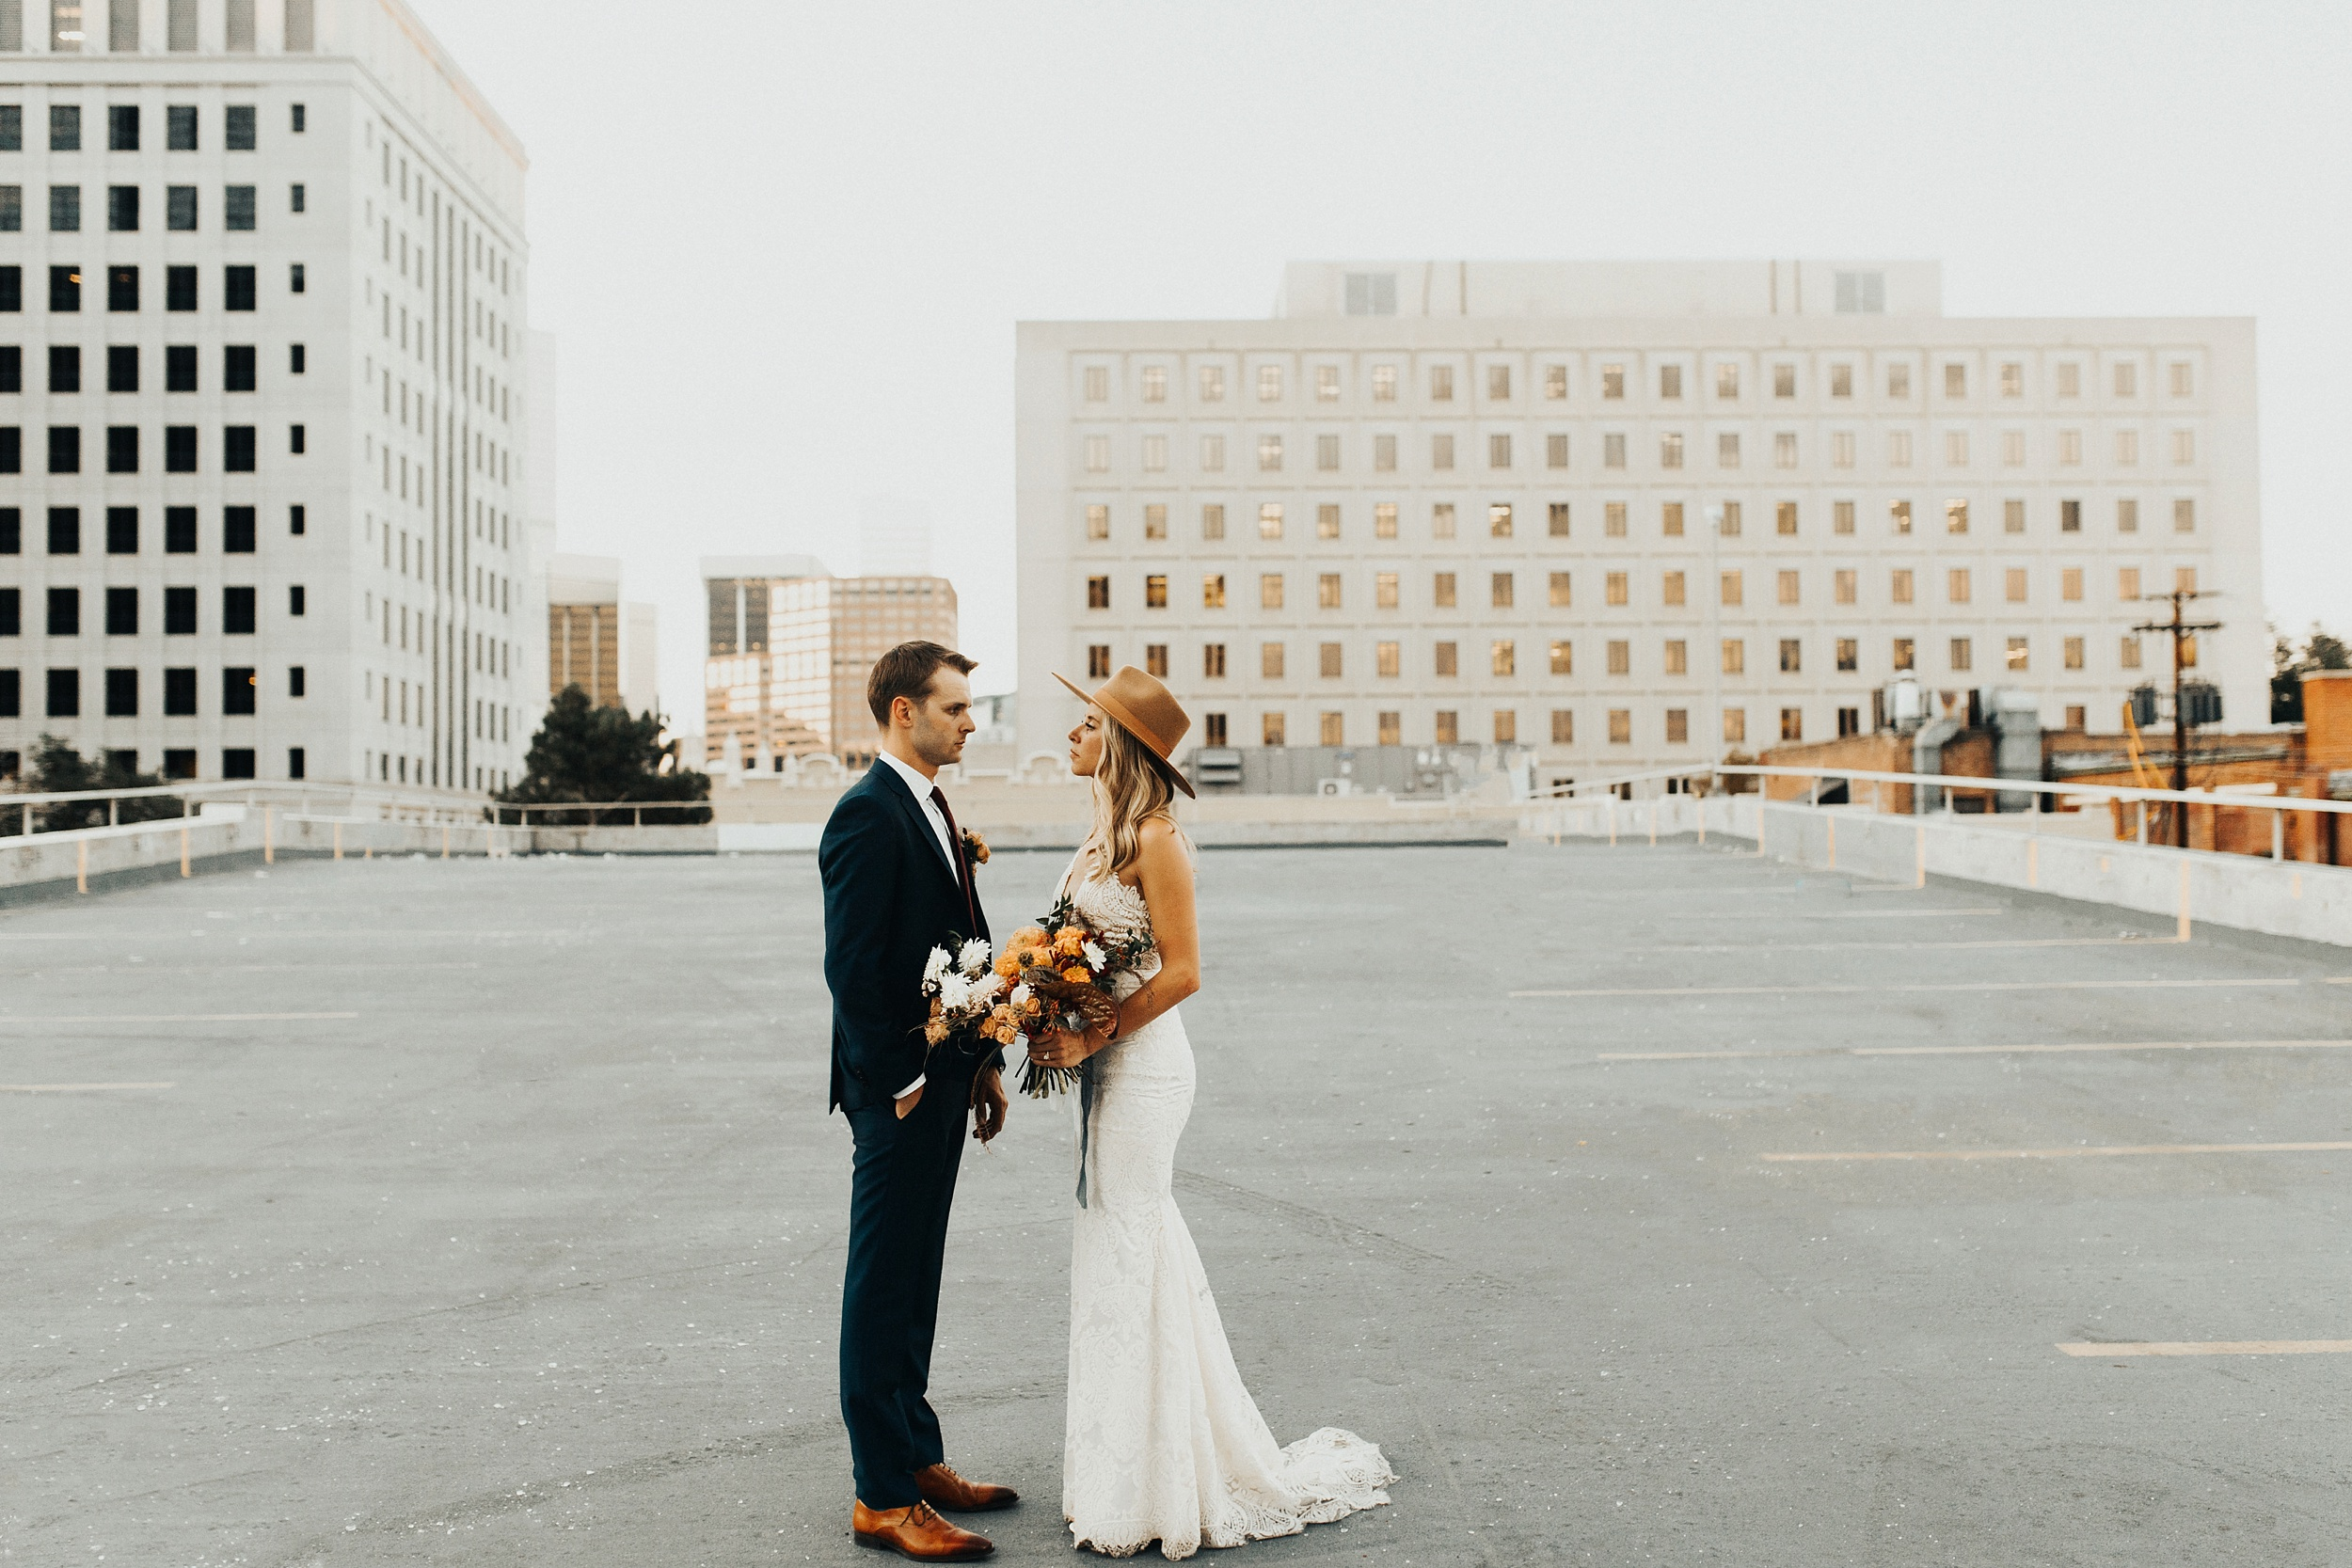 Bride and groom's rooftop elopement in downtown denver!